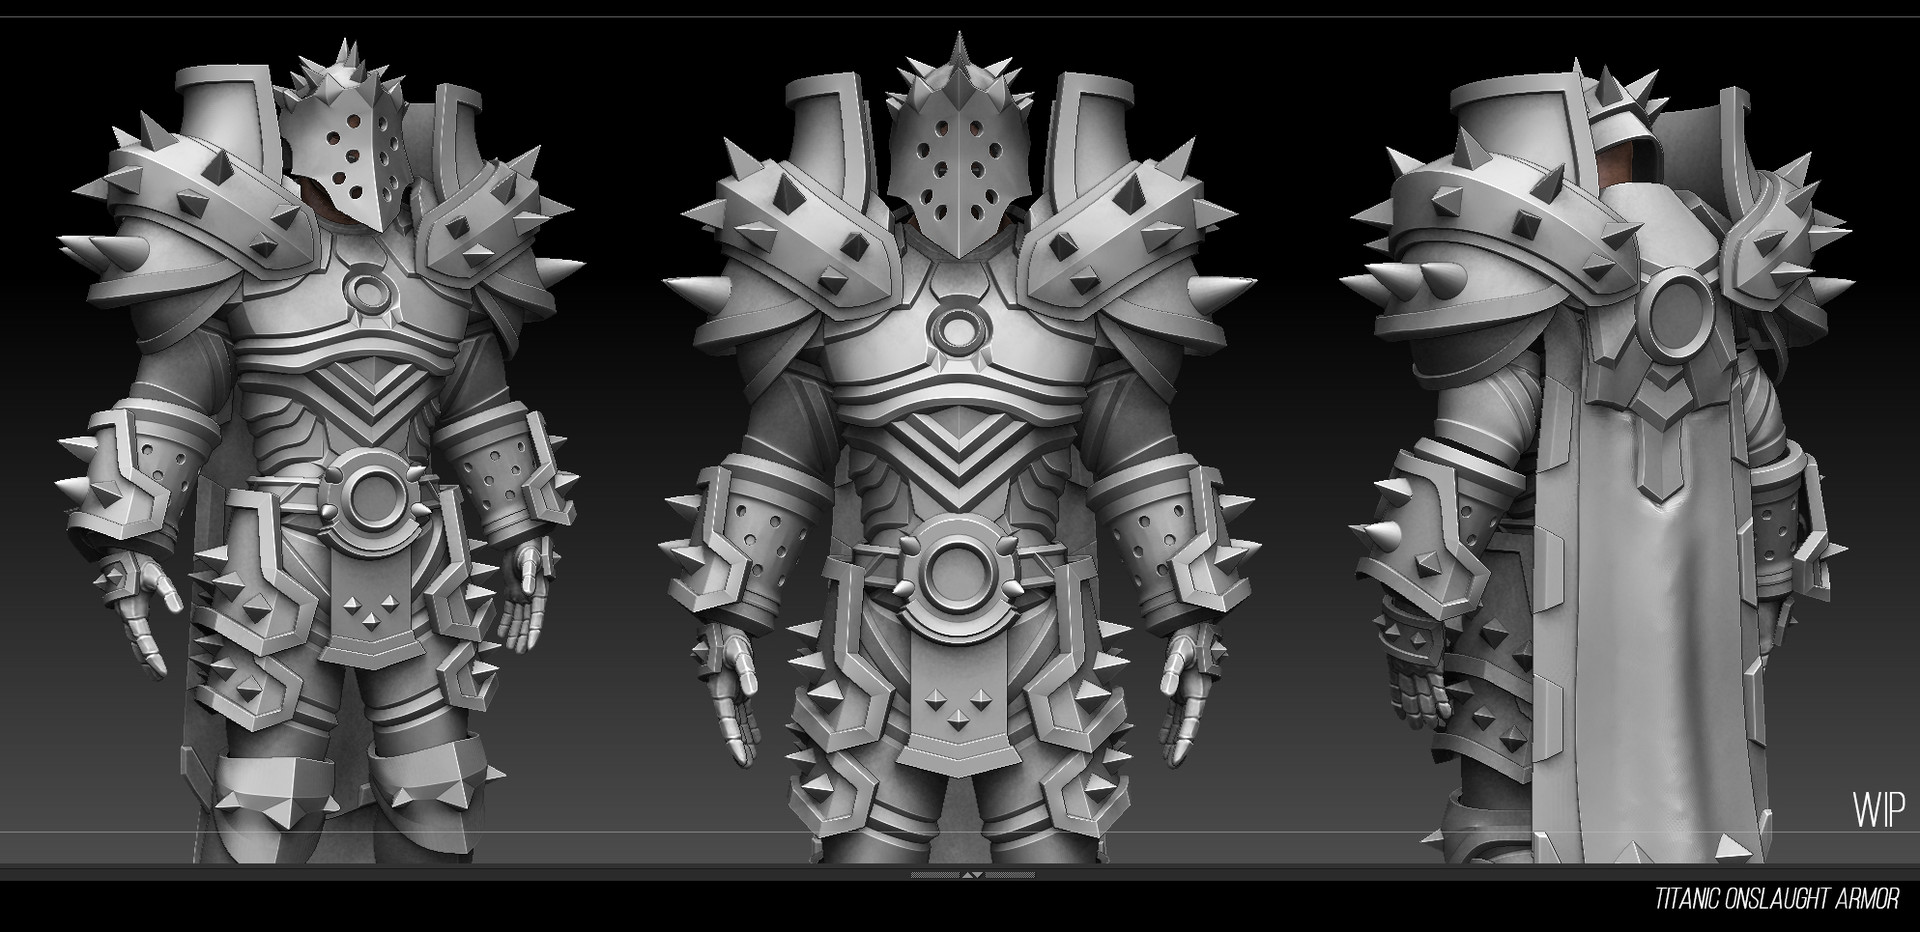 ArtStation - Warrior t20 armor set WIP, Romain Sakharov